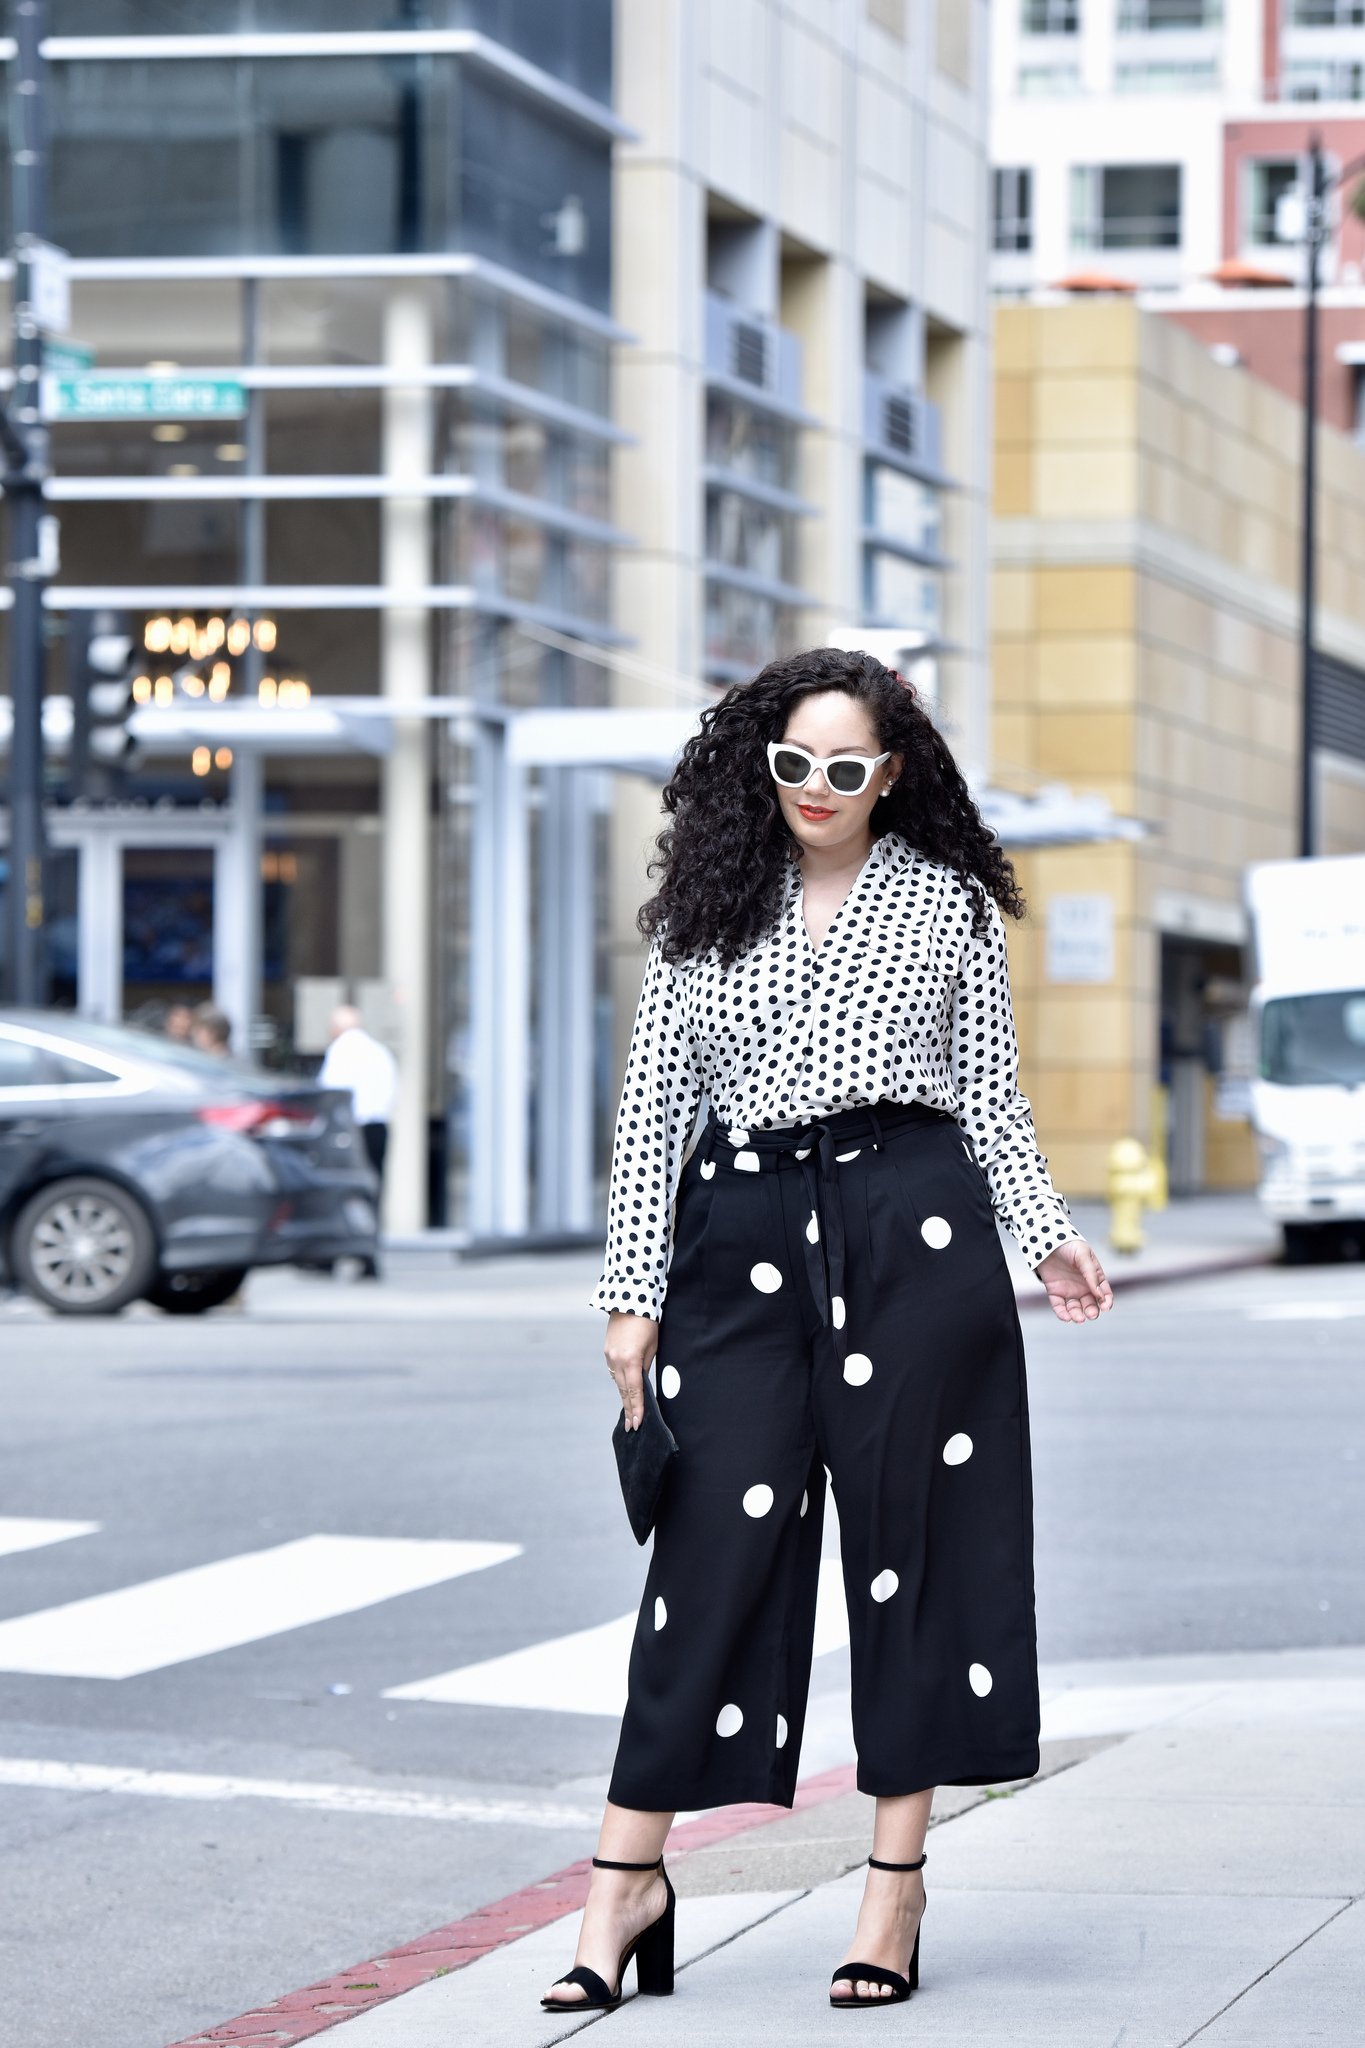 9b309e654a98 The Polkadot Pieces I m Loving Right Now Via  GirlWithCurves  outfits  style